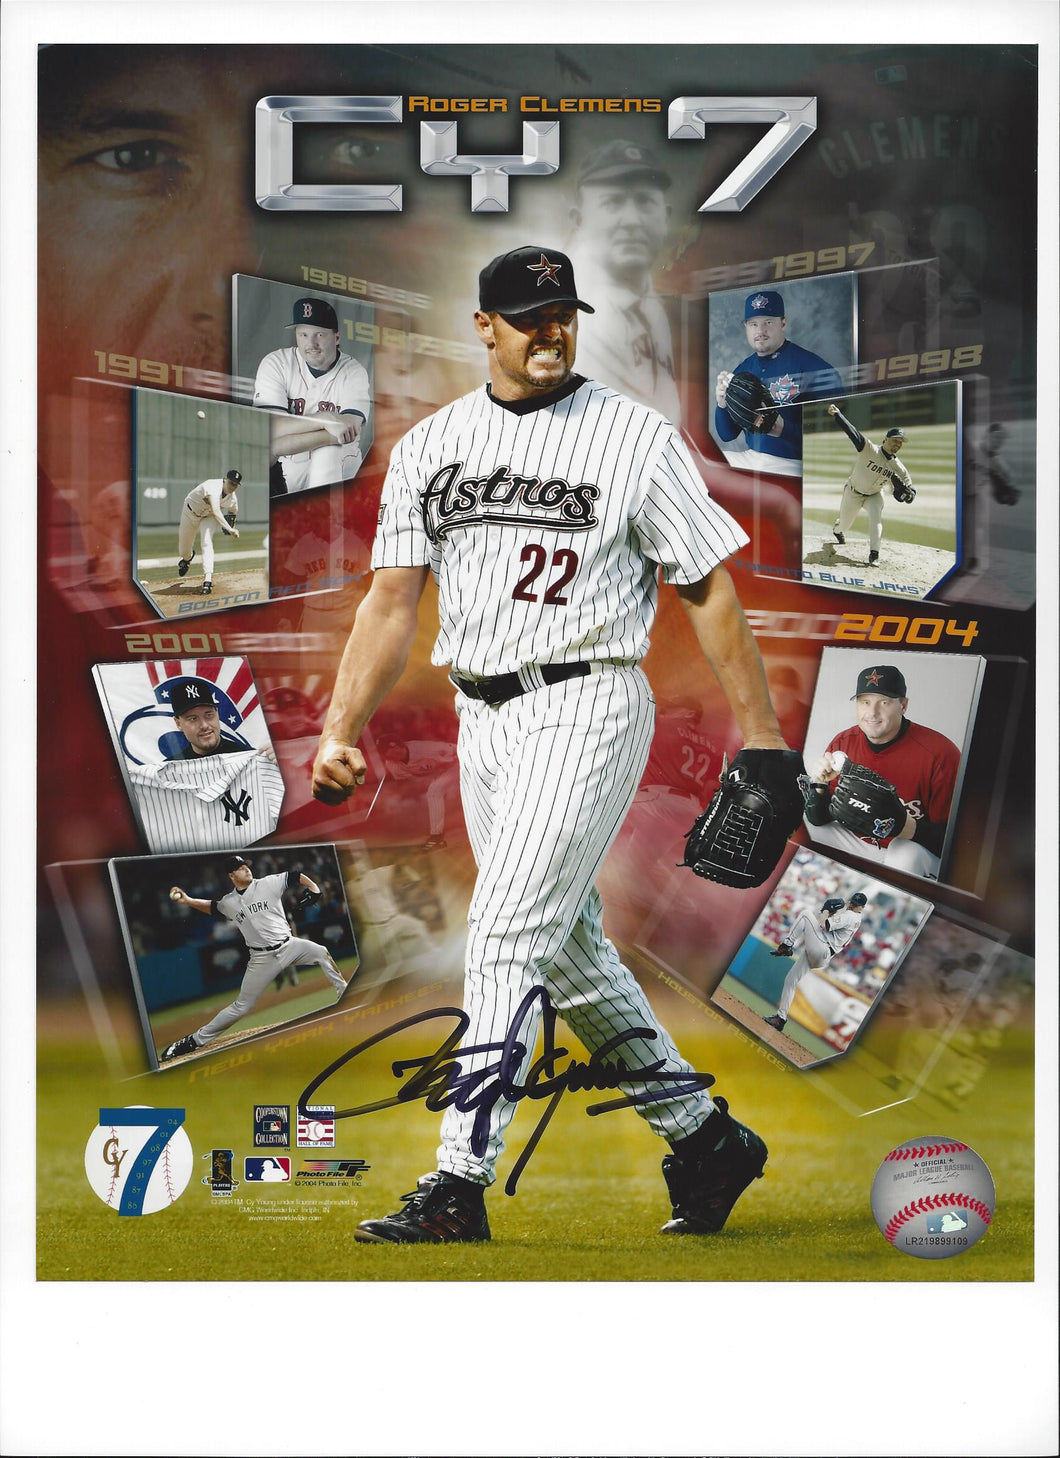 Roger Clemens CY7,